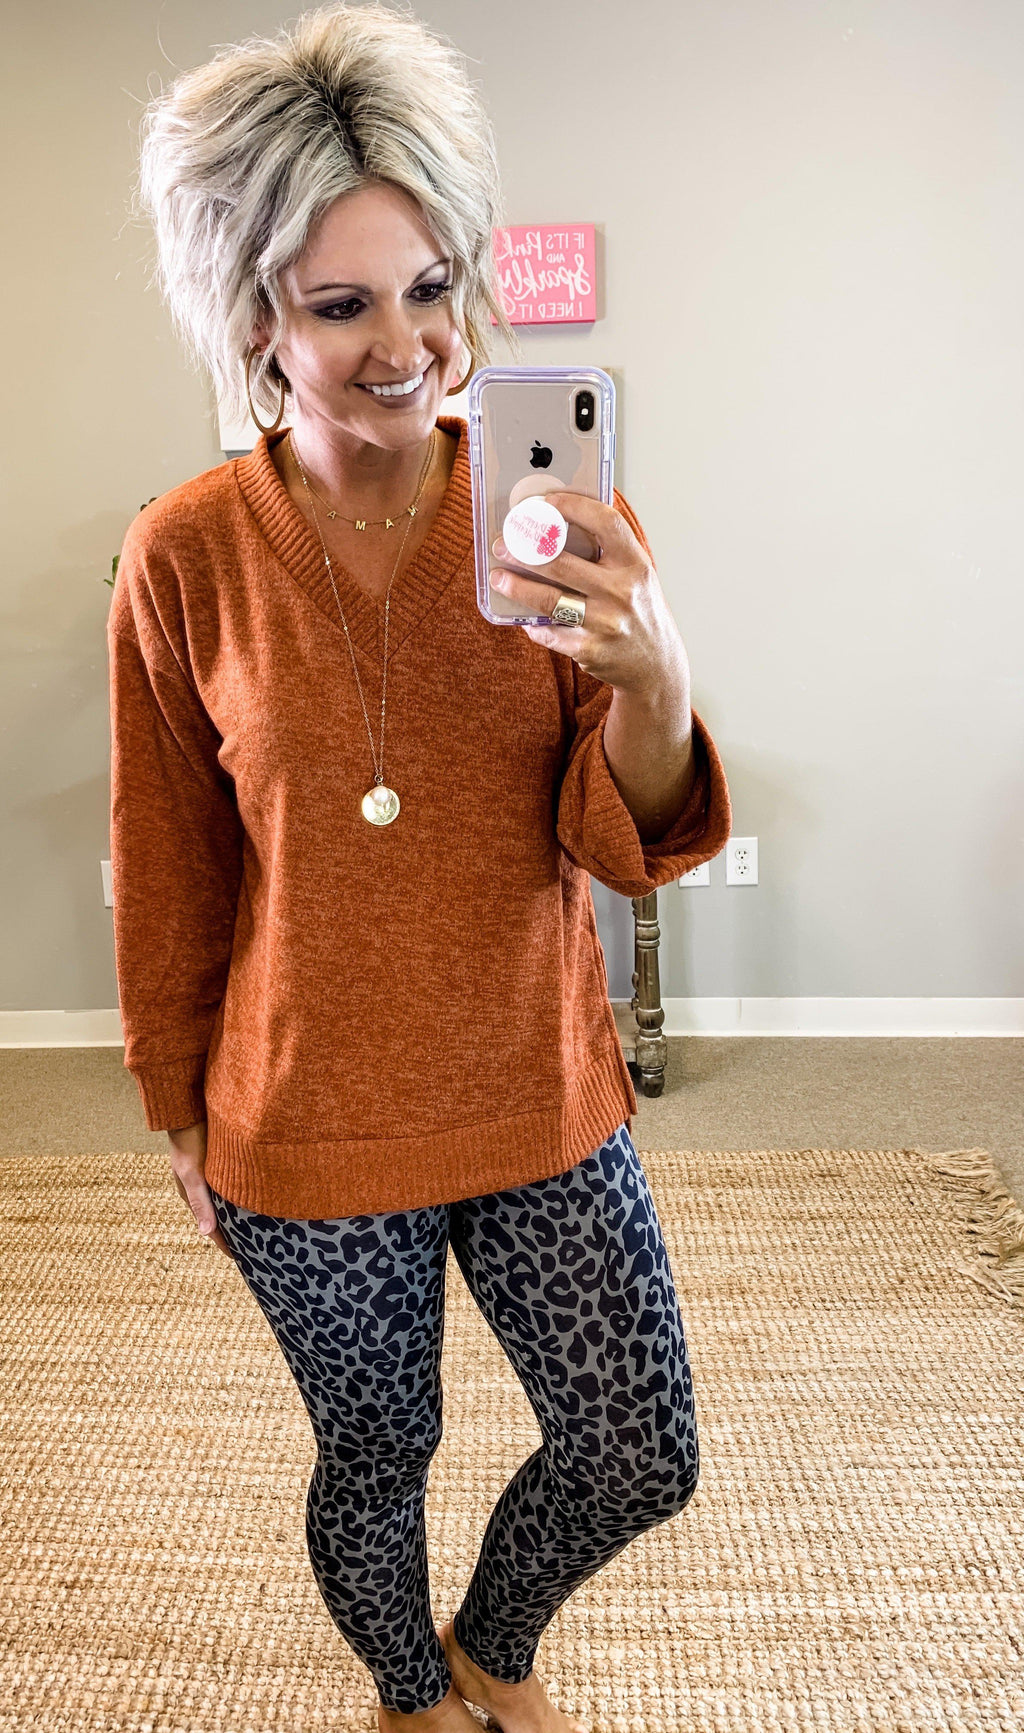 Leaping Leopard Leggings - Preppy Pineapple